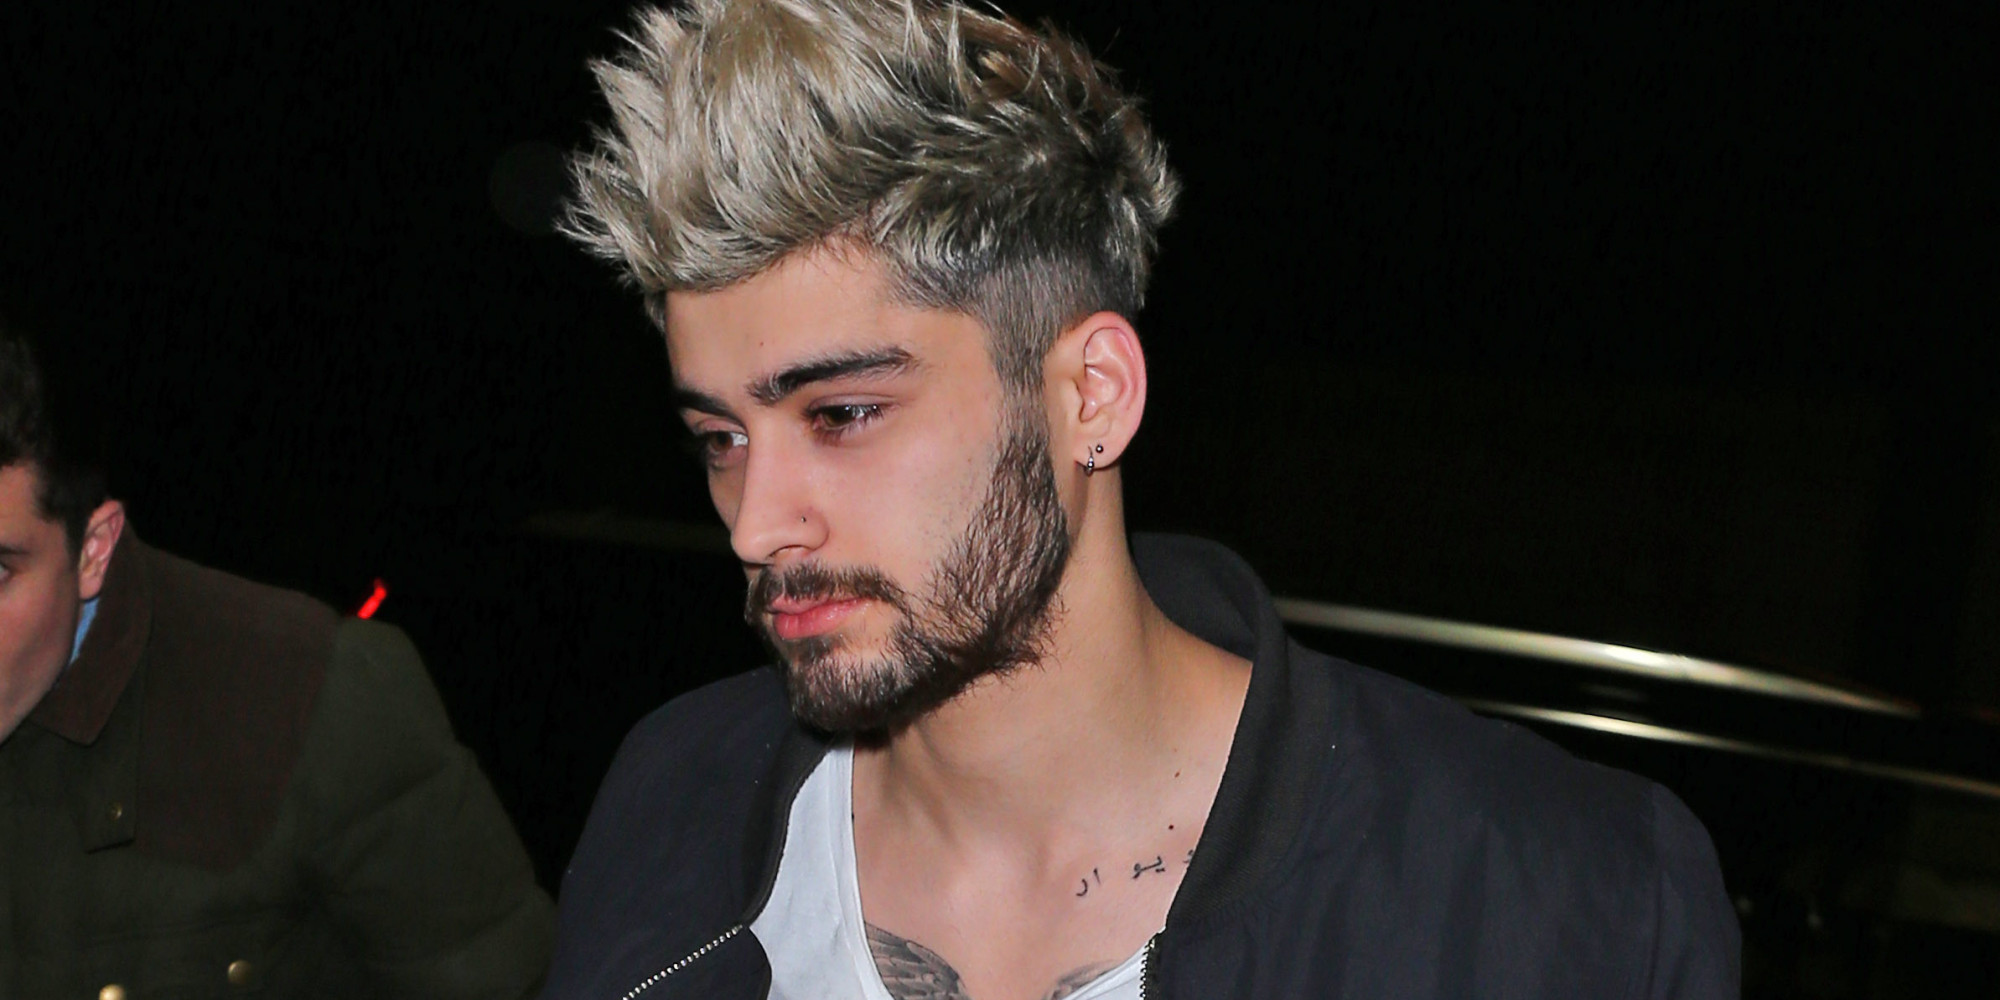 Zayn Malik Wallpapers High Quality Download Free